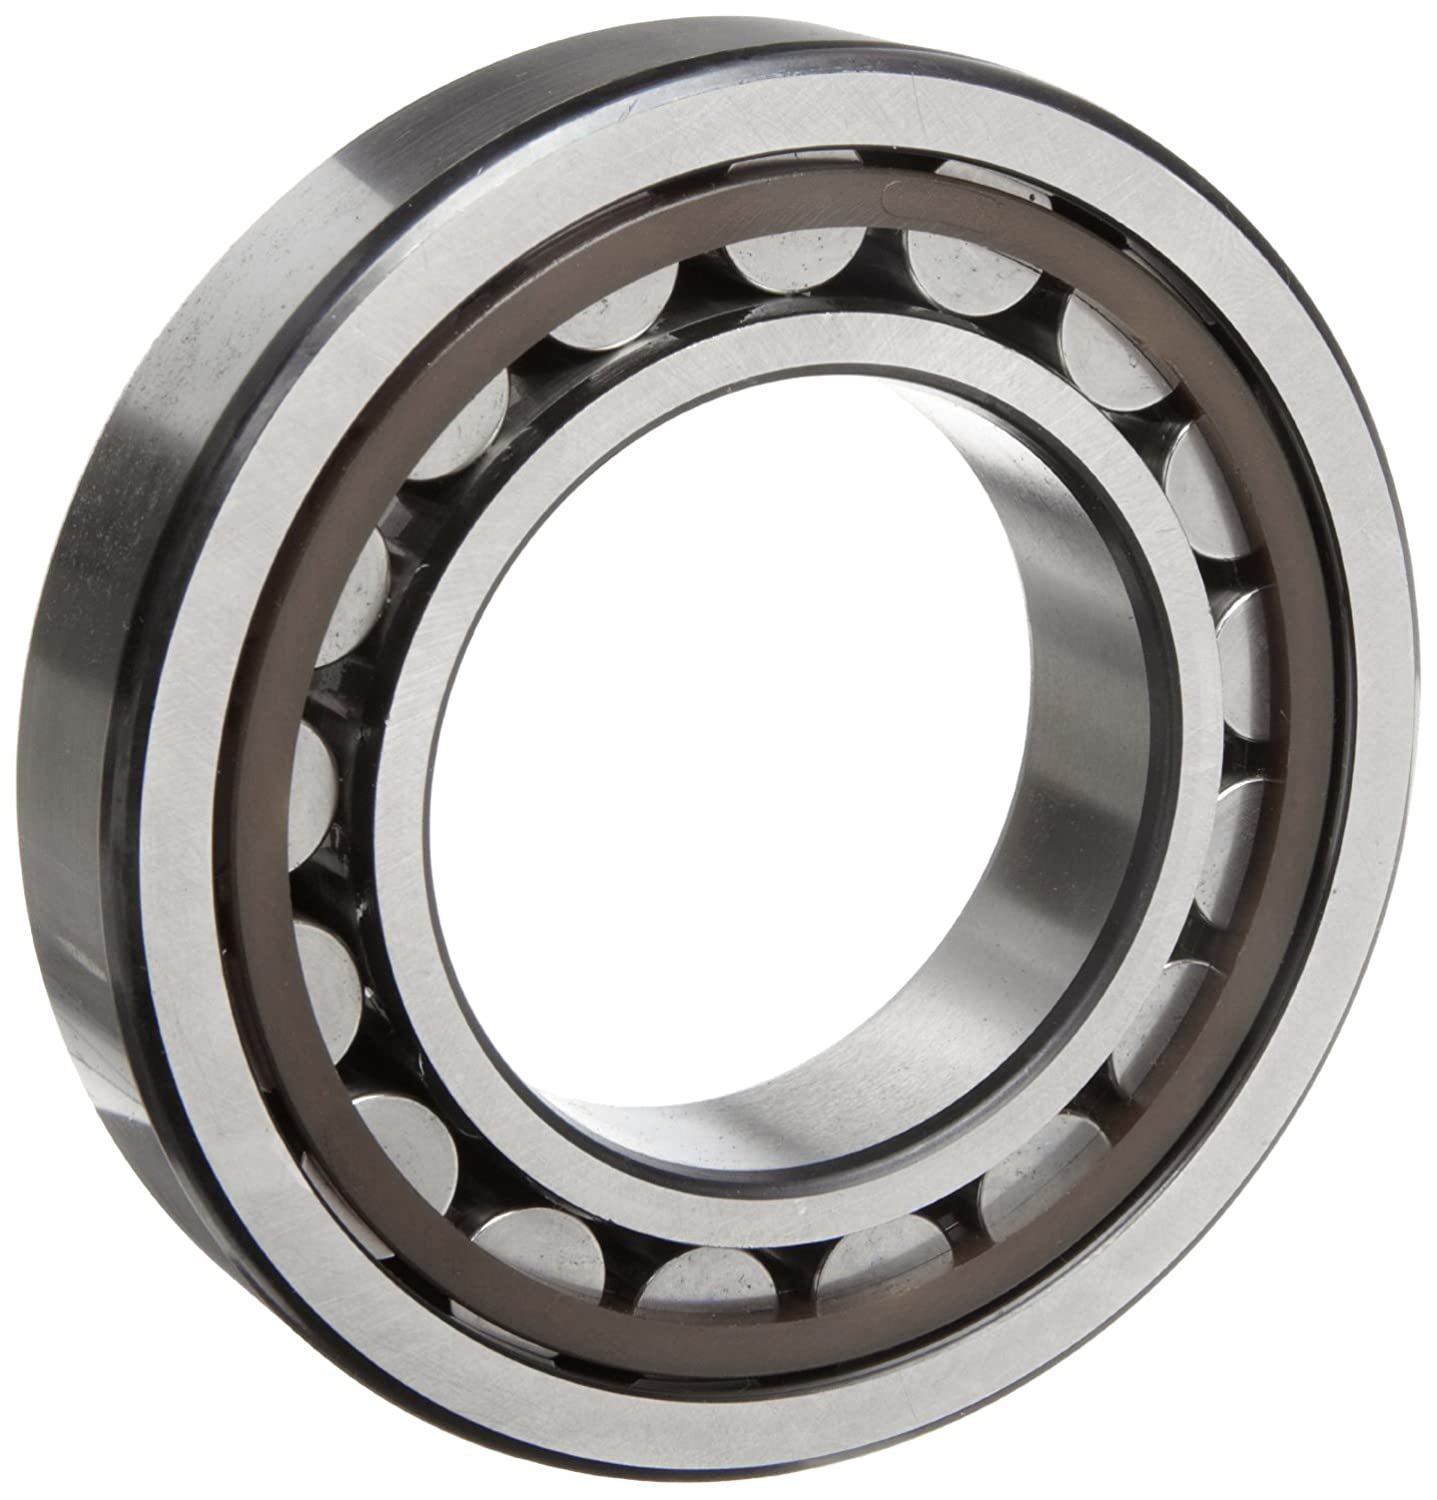 28mm Width Removable Inner Ring 4300rpm Maximum Rotational Speed Normal Clearance Metric 140000N Static Load Capacity 120000N Dynamic Load Ca 85mm Bore NSK NU217W Cylindrical Roller Bearing Pressed Steel Cage 150mm OD Standard Capacity Straight